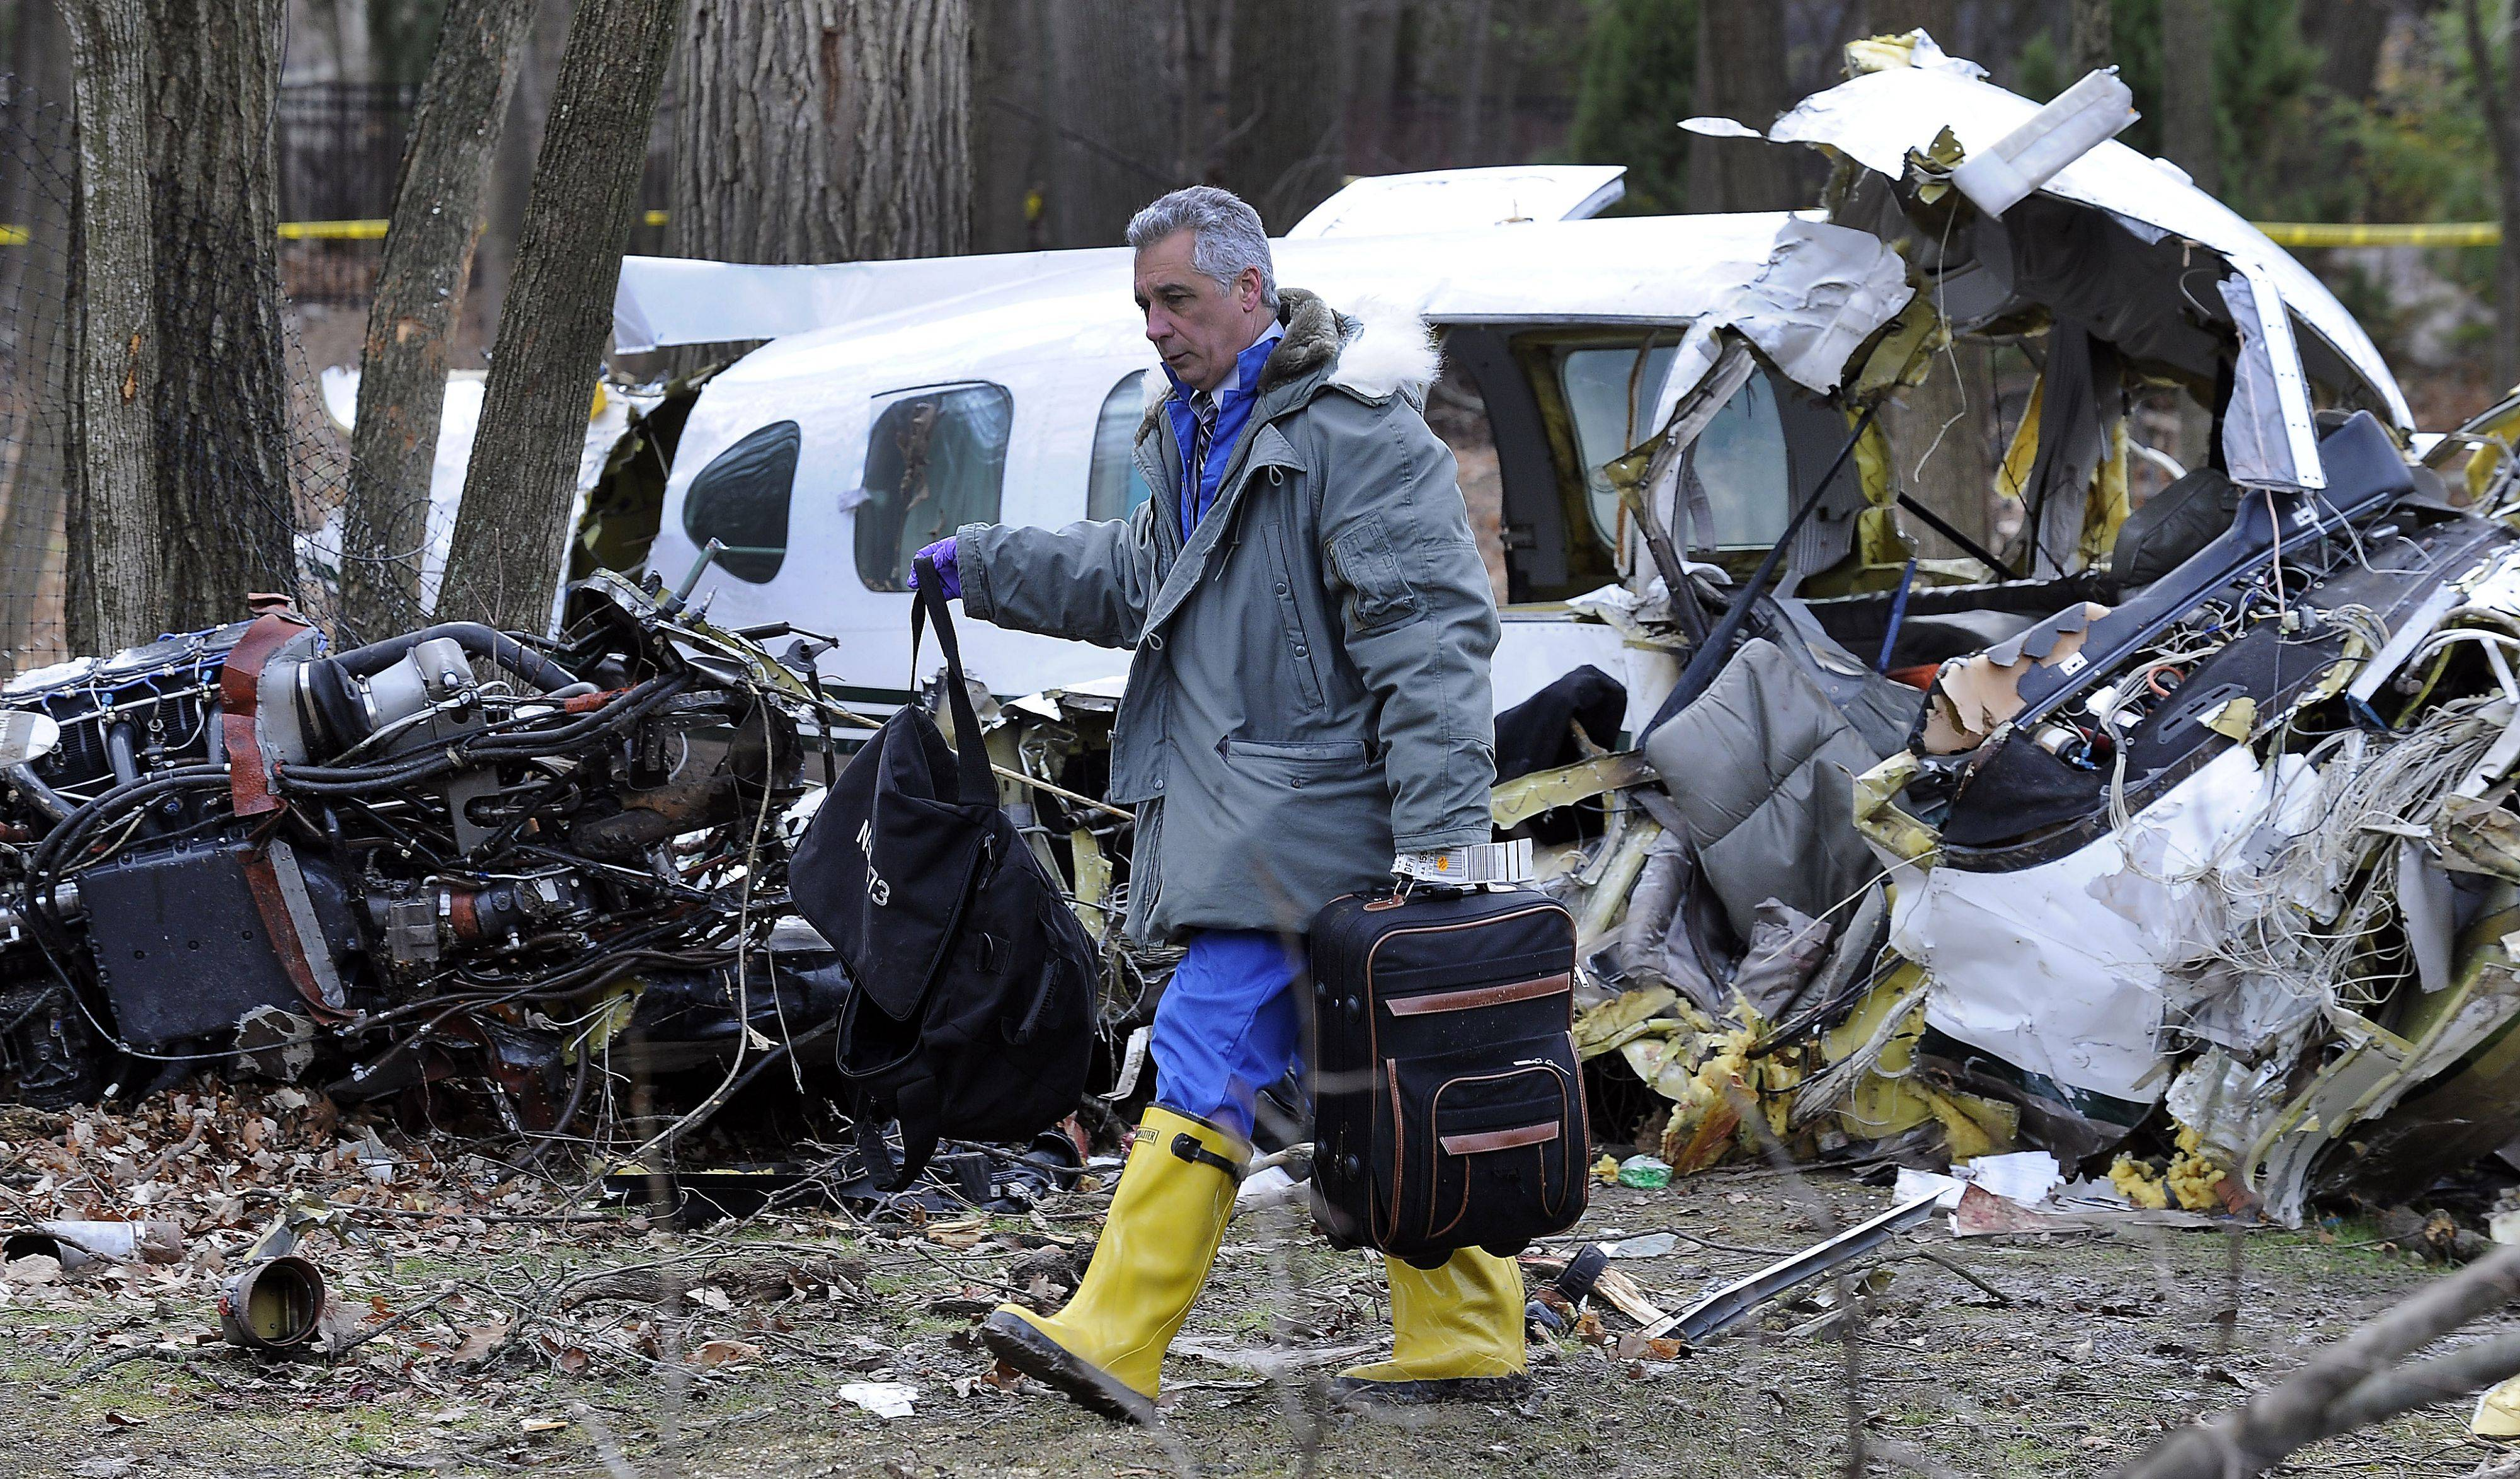 An official from the FAA carries away luggage from the Riverwoods' plane crash site.